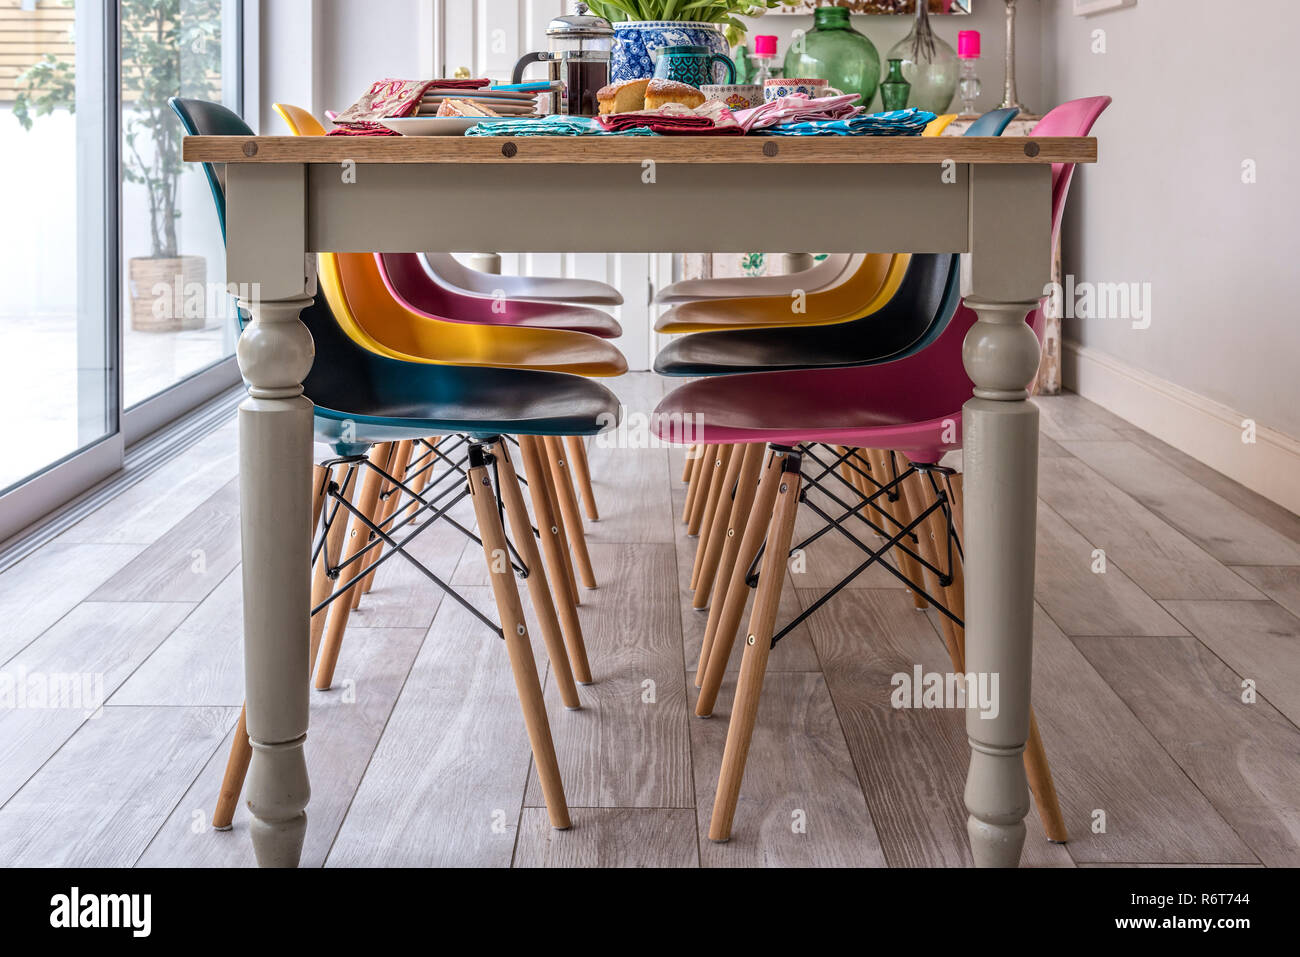 Sedia Wooden Eames Eames Chairs Stock Photos Eames Chairs Stock Images Alamy